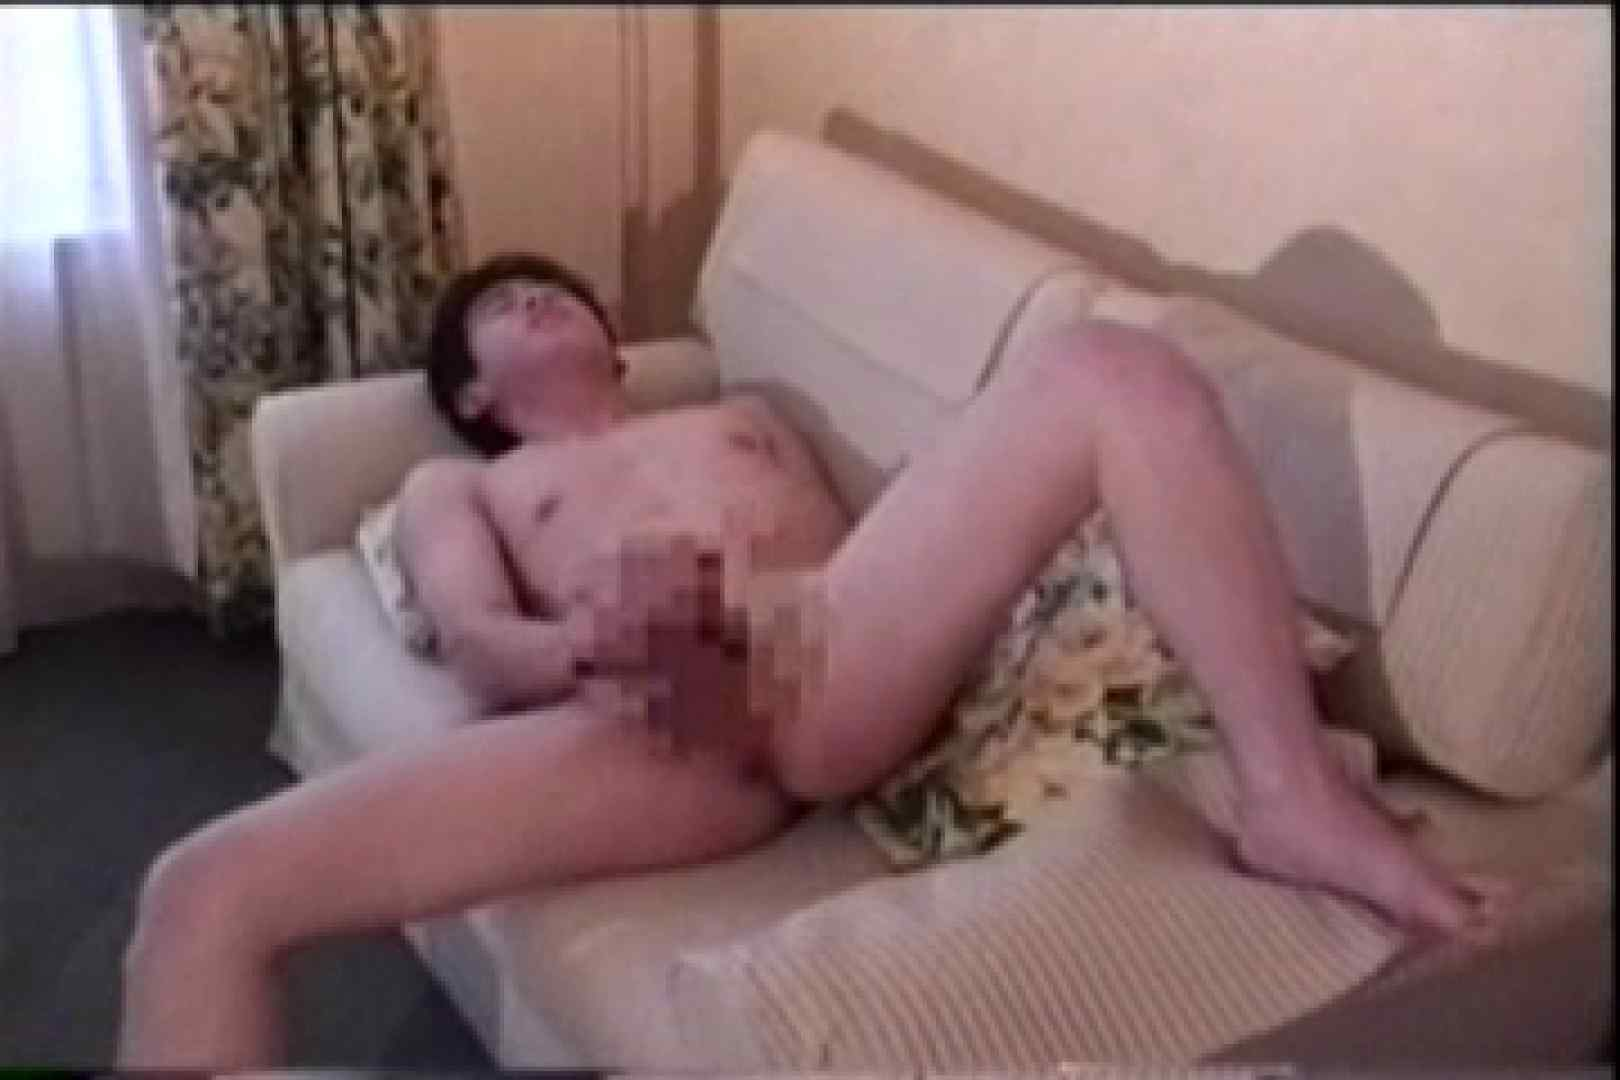 Boys be unbelievable06 ちんこ | イケメンのsex  85pic 75